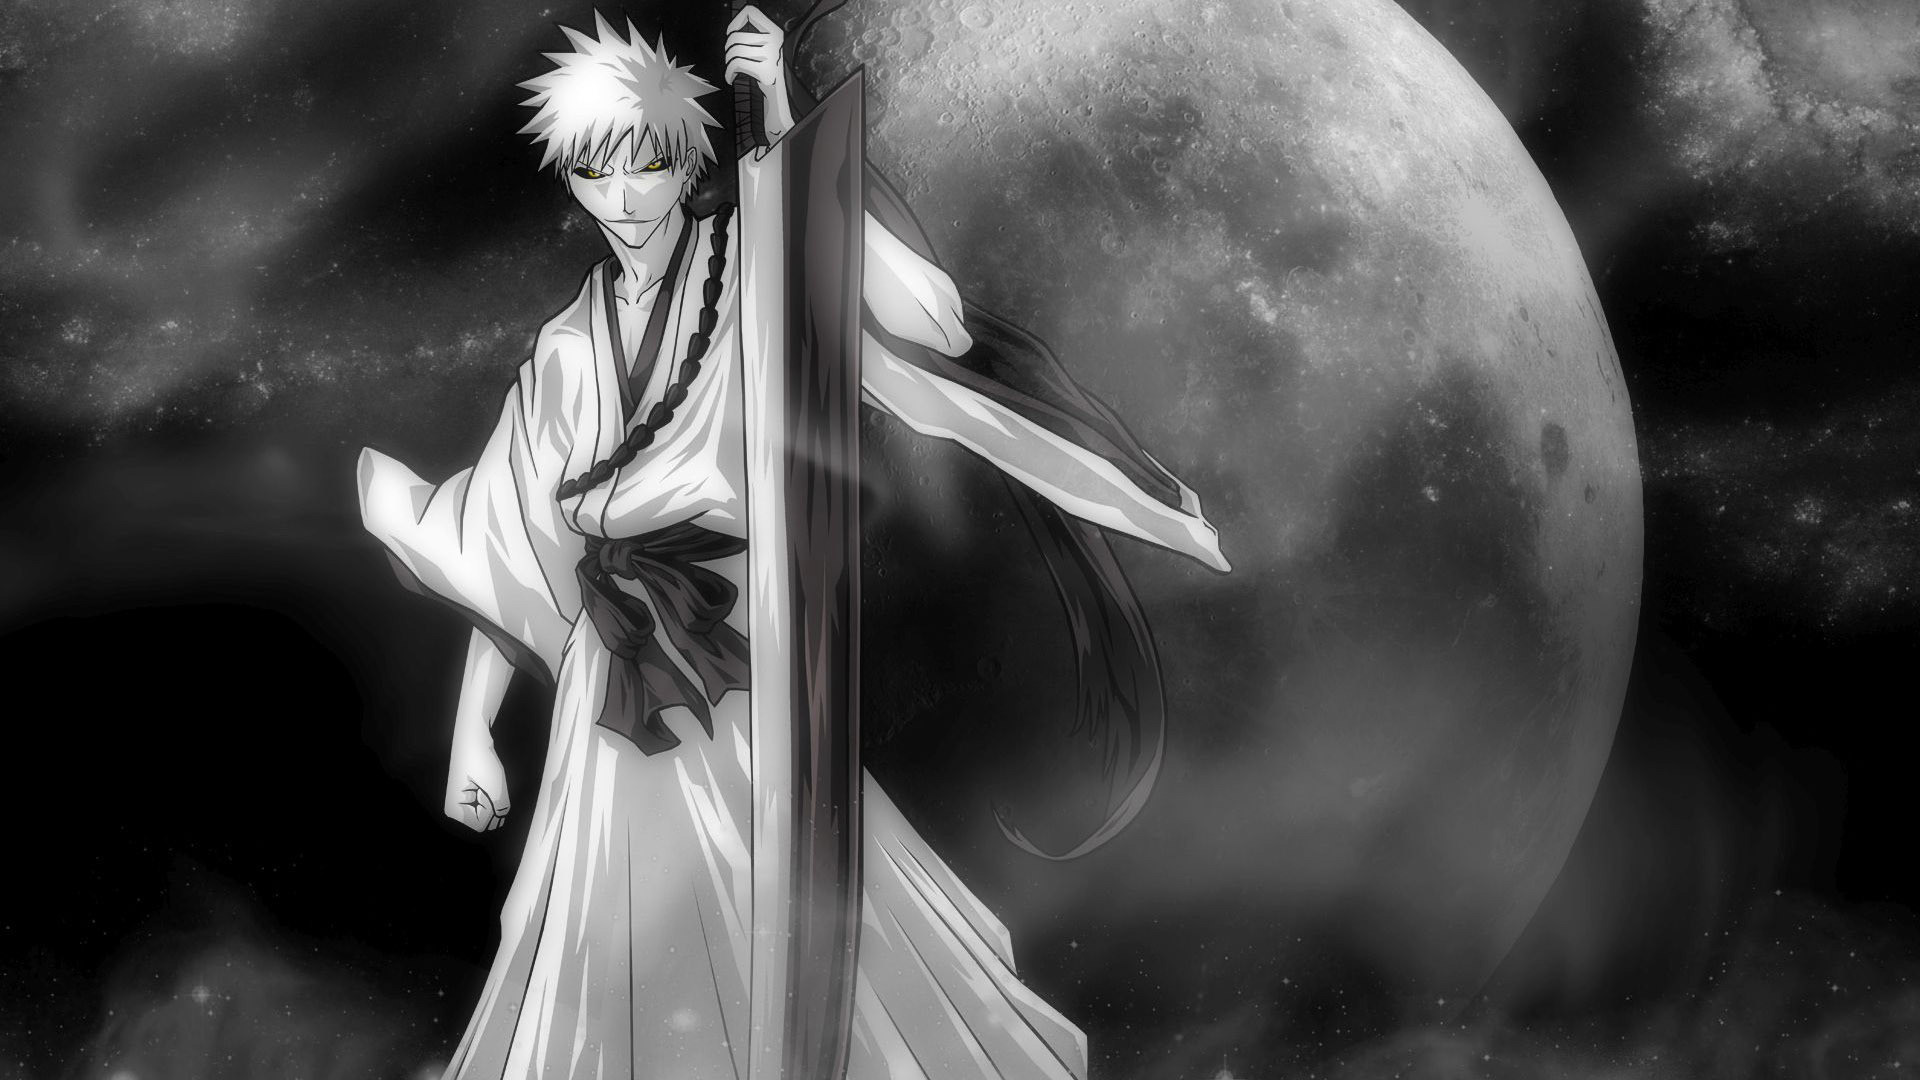 1920x1080 Hollow Ichigo - Bleach HD Wallpaper